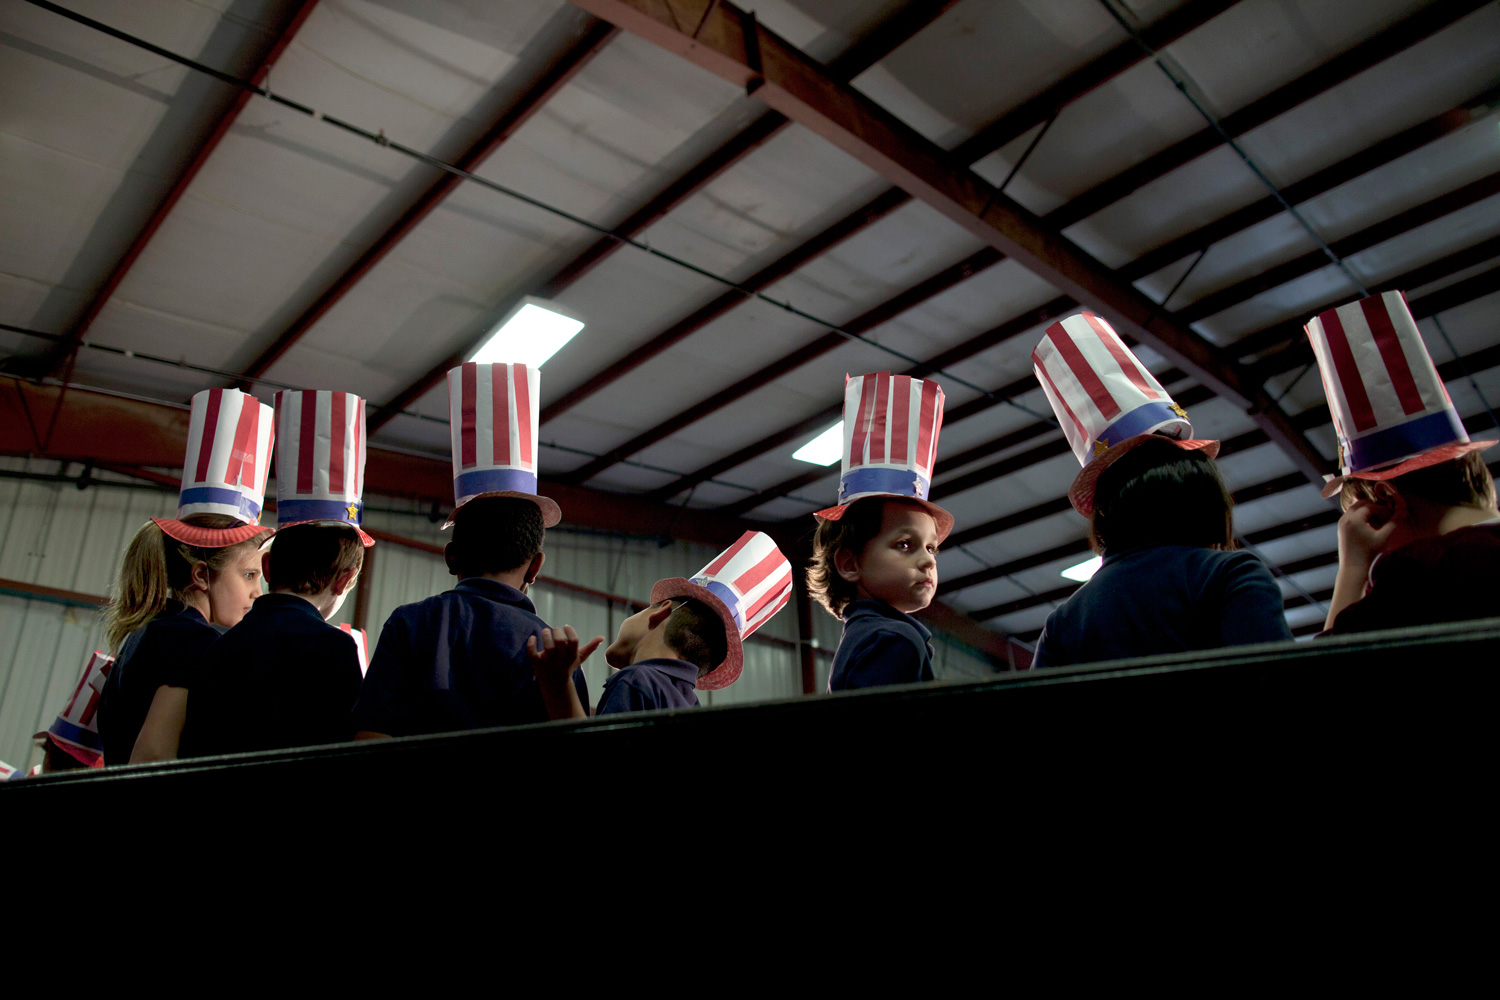 Feb. 29, 2012. Children from Peachtree Academy wait for Republican presidential candidate, former House Speaker Newt Gingrich to arrive for a campaign rally.